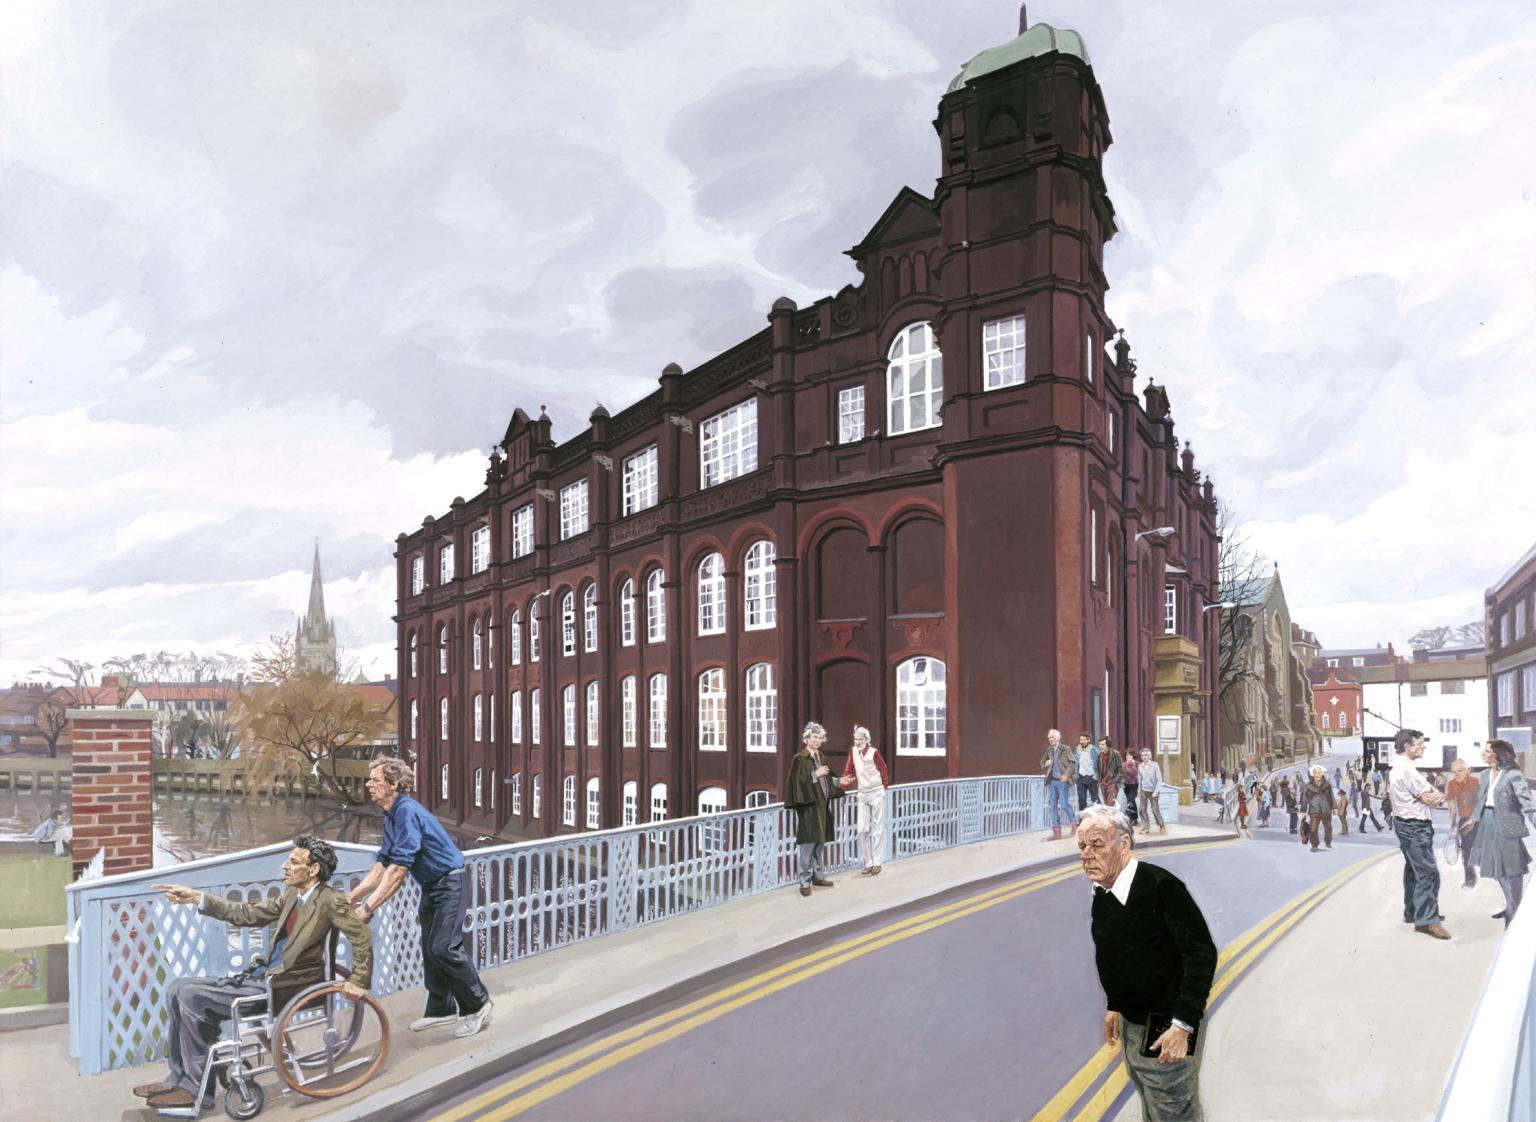 The Norwich School of Art 1982-4 by John Wonnacott